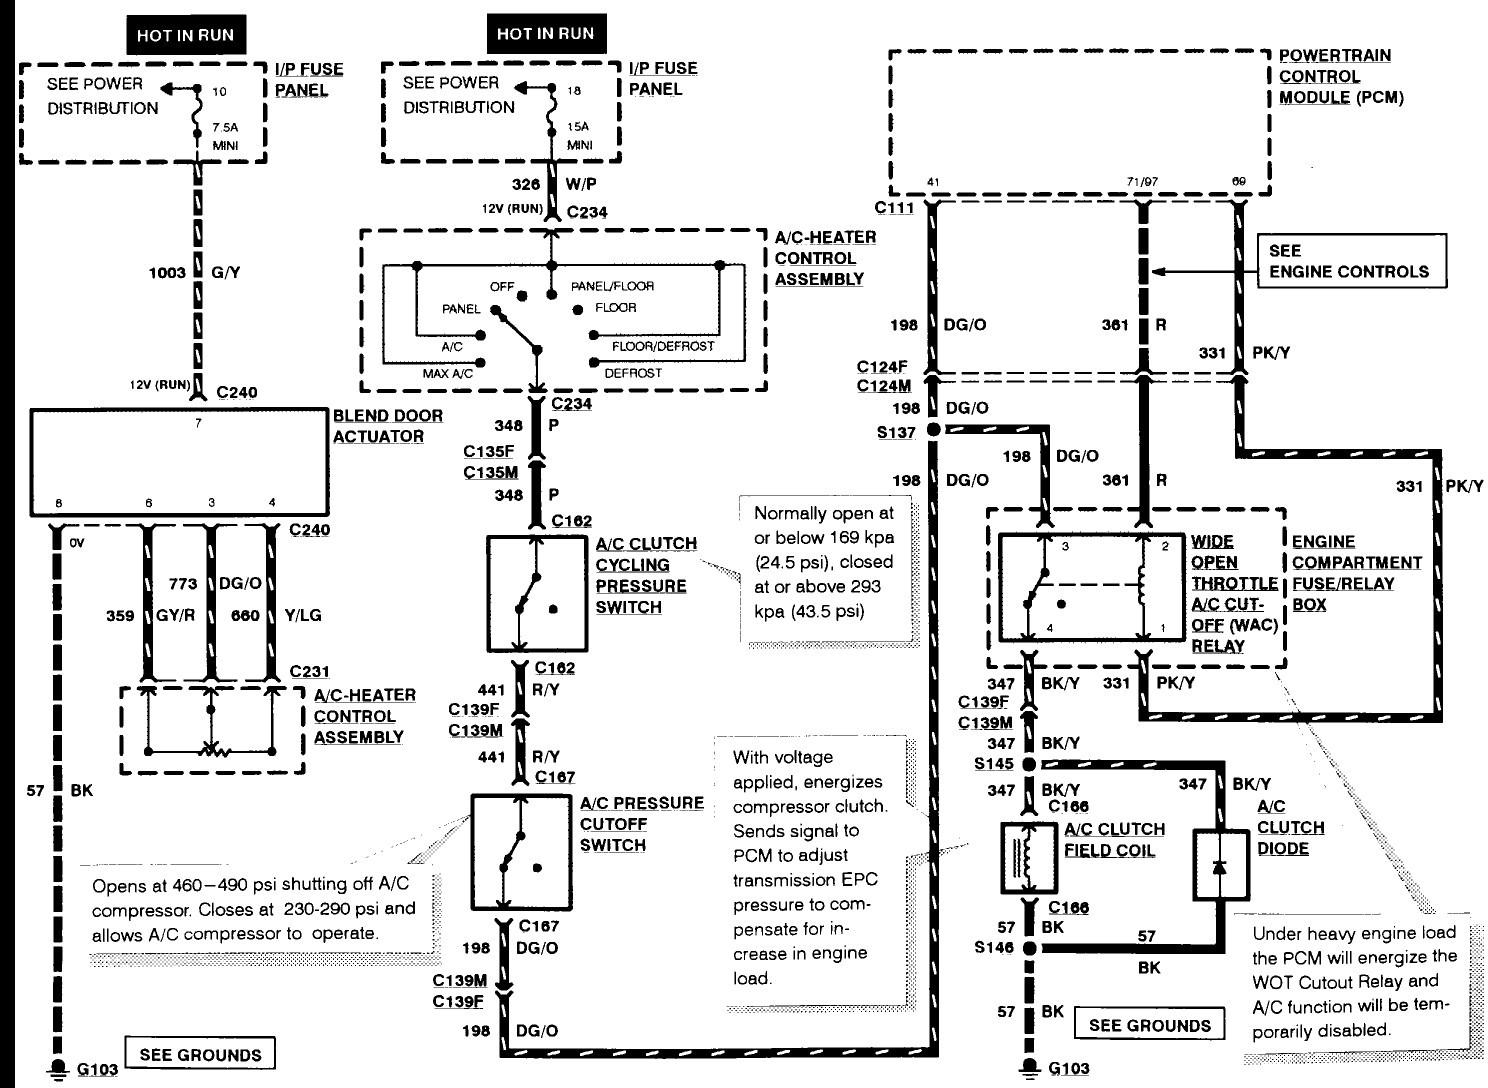 1940 9n ford tractor wiring diagram 94 ranger radio distributor best library excellent disributor contemporary